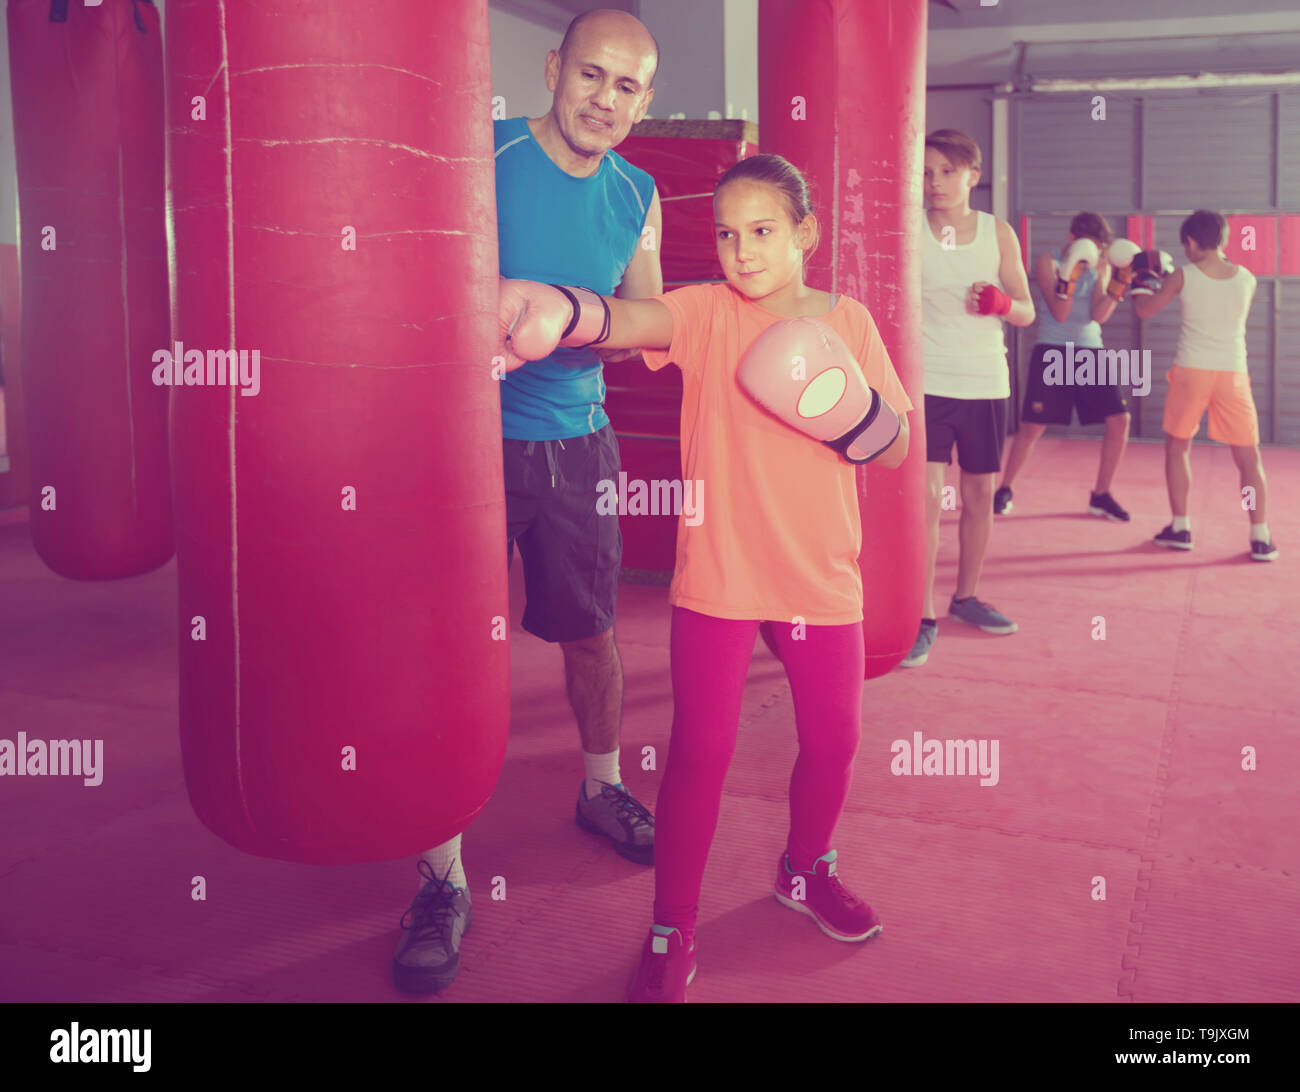 Girl teenager at boxing workout on punching bag with instructor - Stock Image